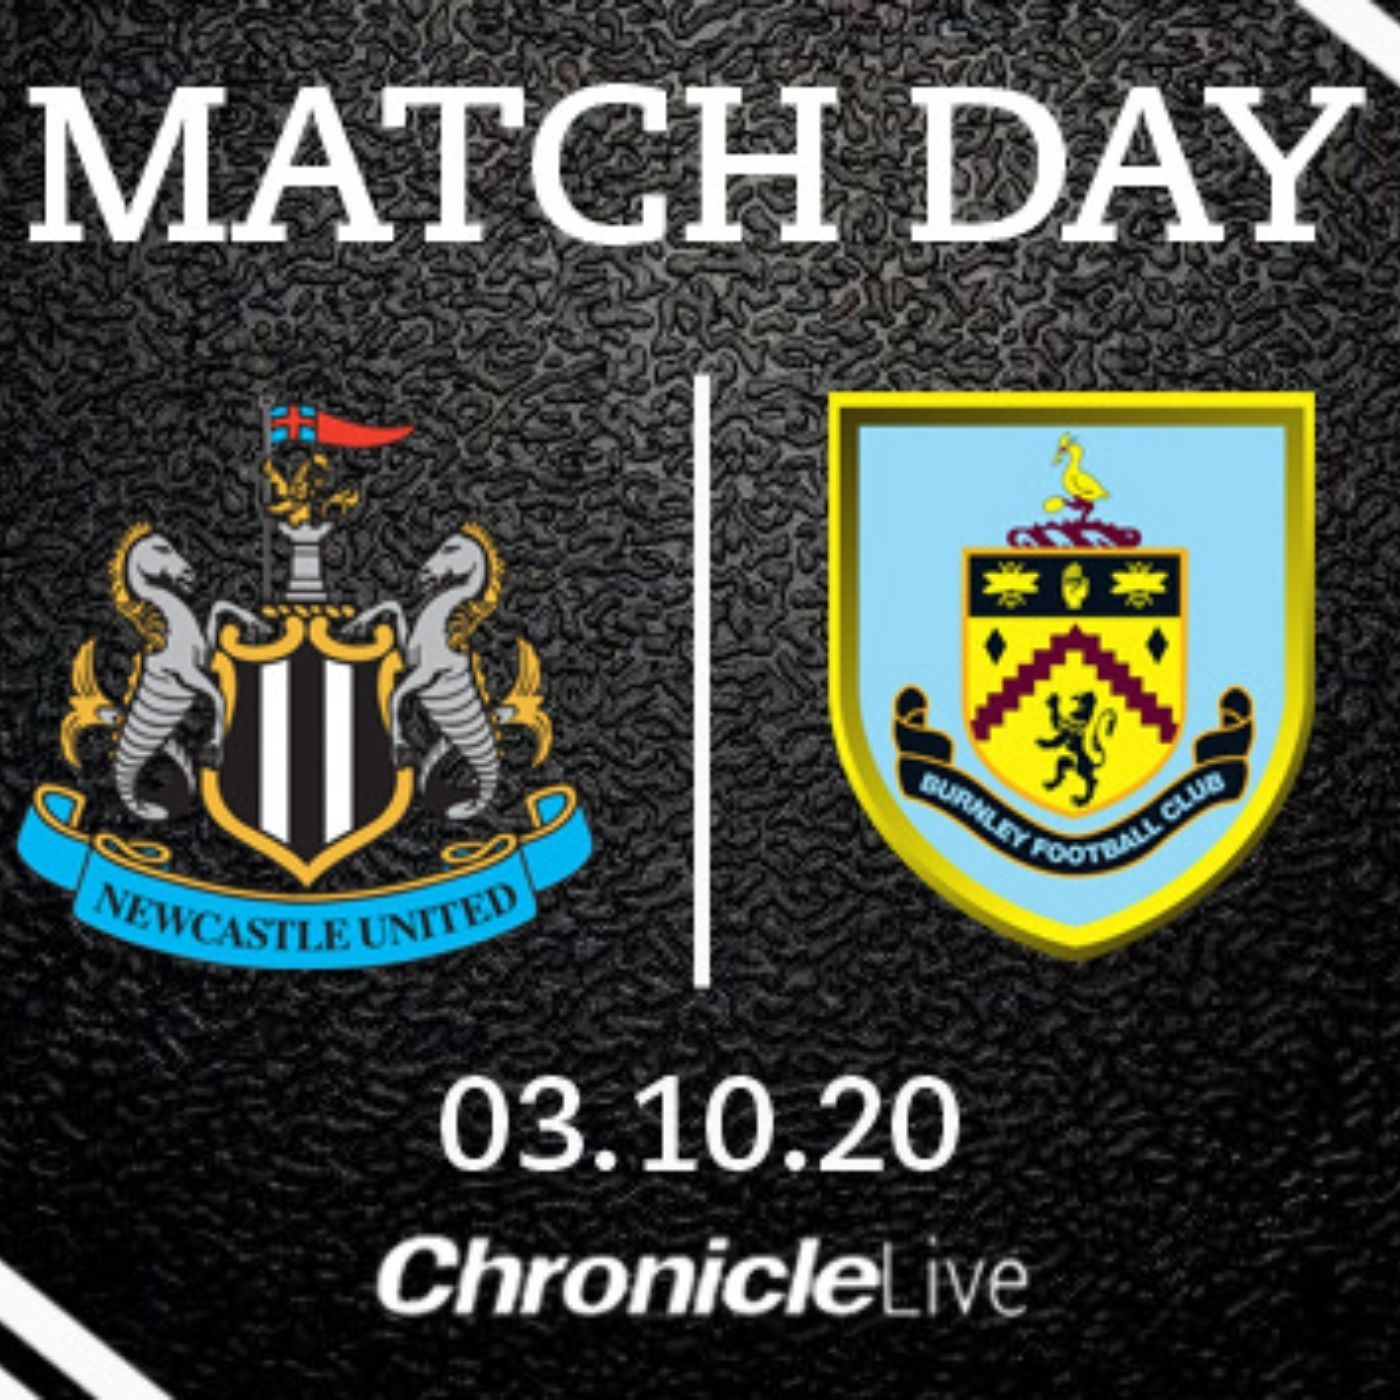 NUFC vs Burnley Preview - Steve Bruce looking to shut the critics up